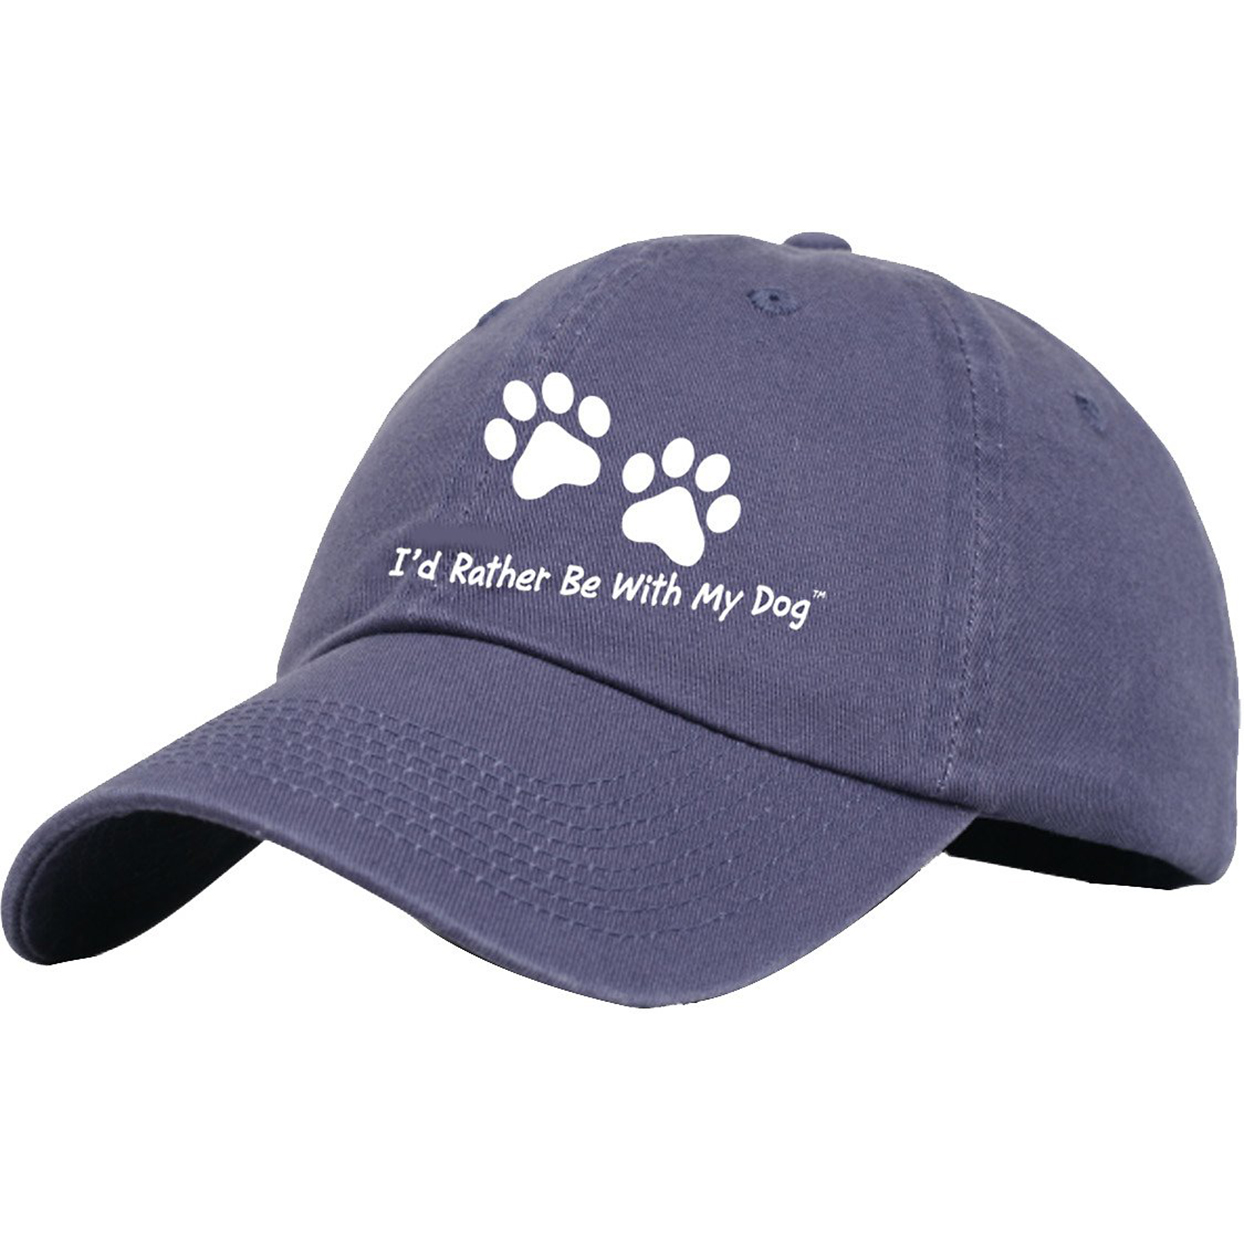 I'd rather be with my dog baseball cap